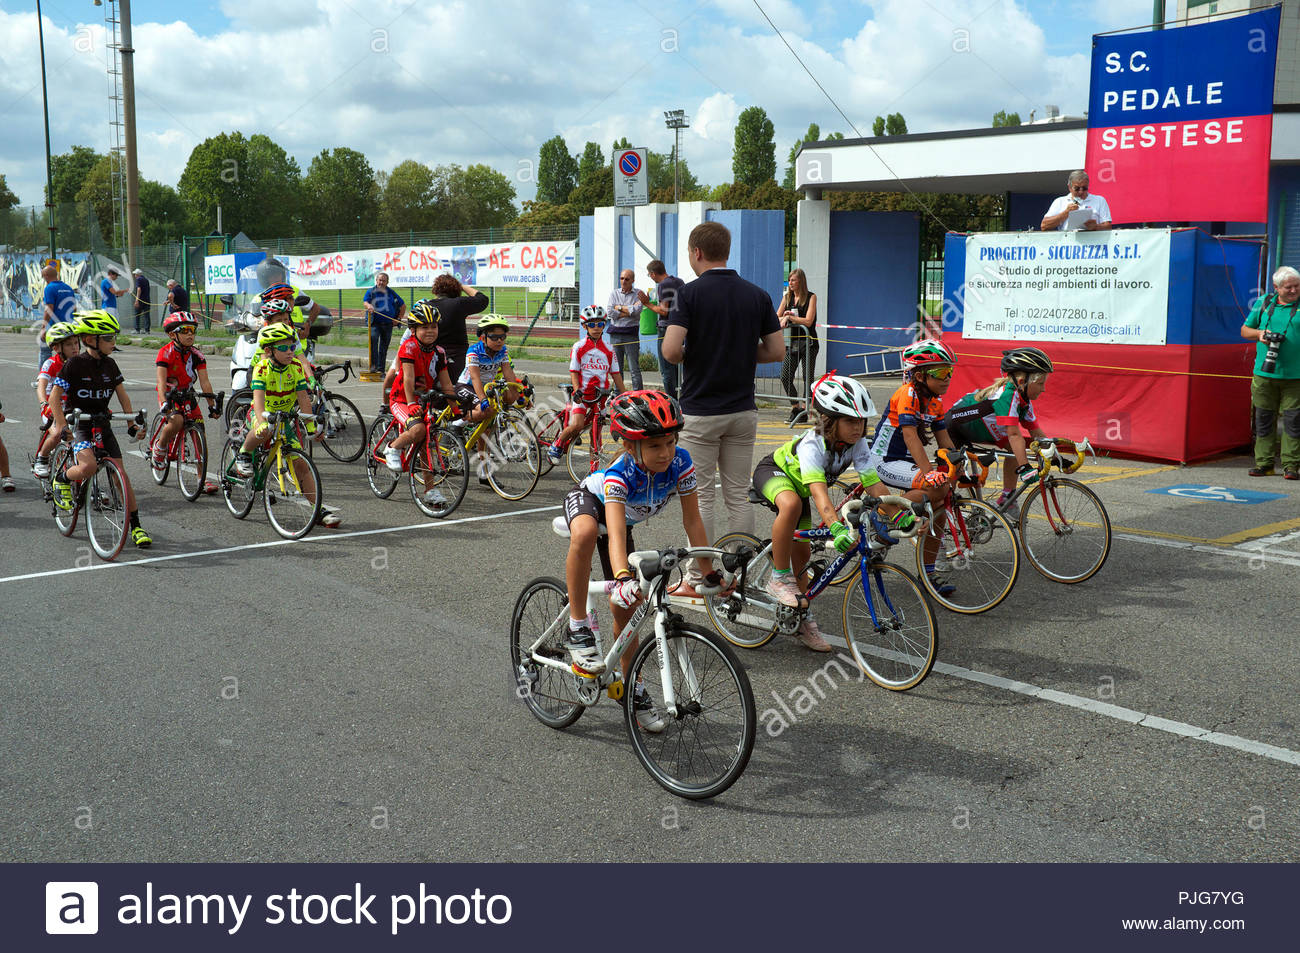 Children's bicycle race - moments before the start the riders take position before the off . Sesto San Giovanni, Milan, Italy. Stock Photo